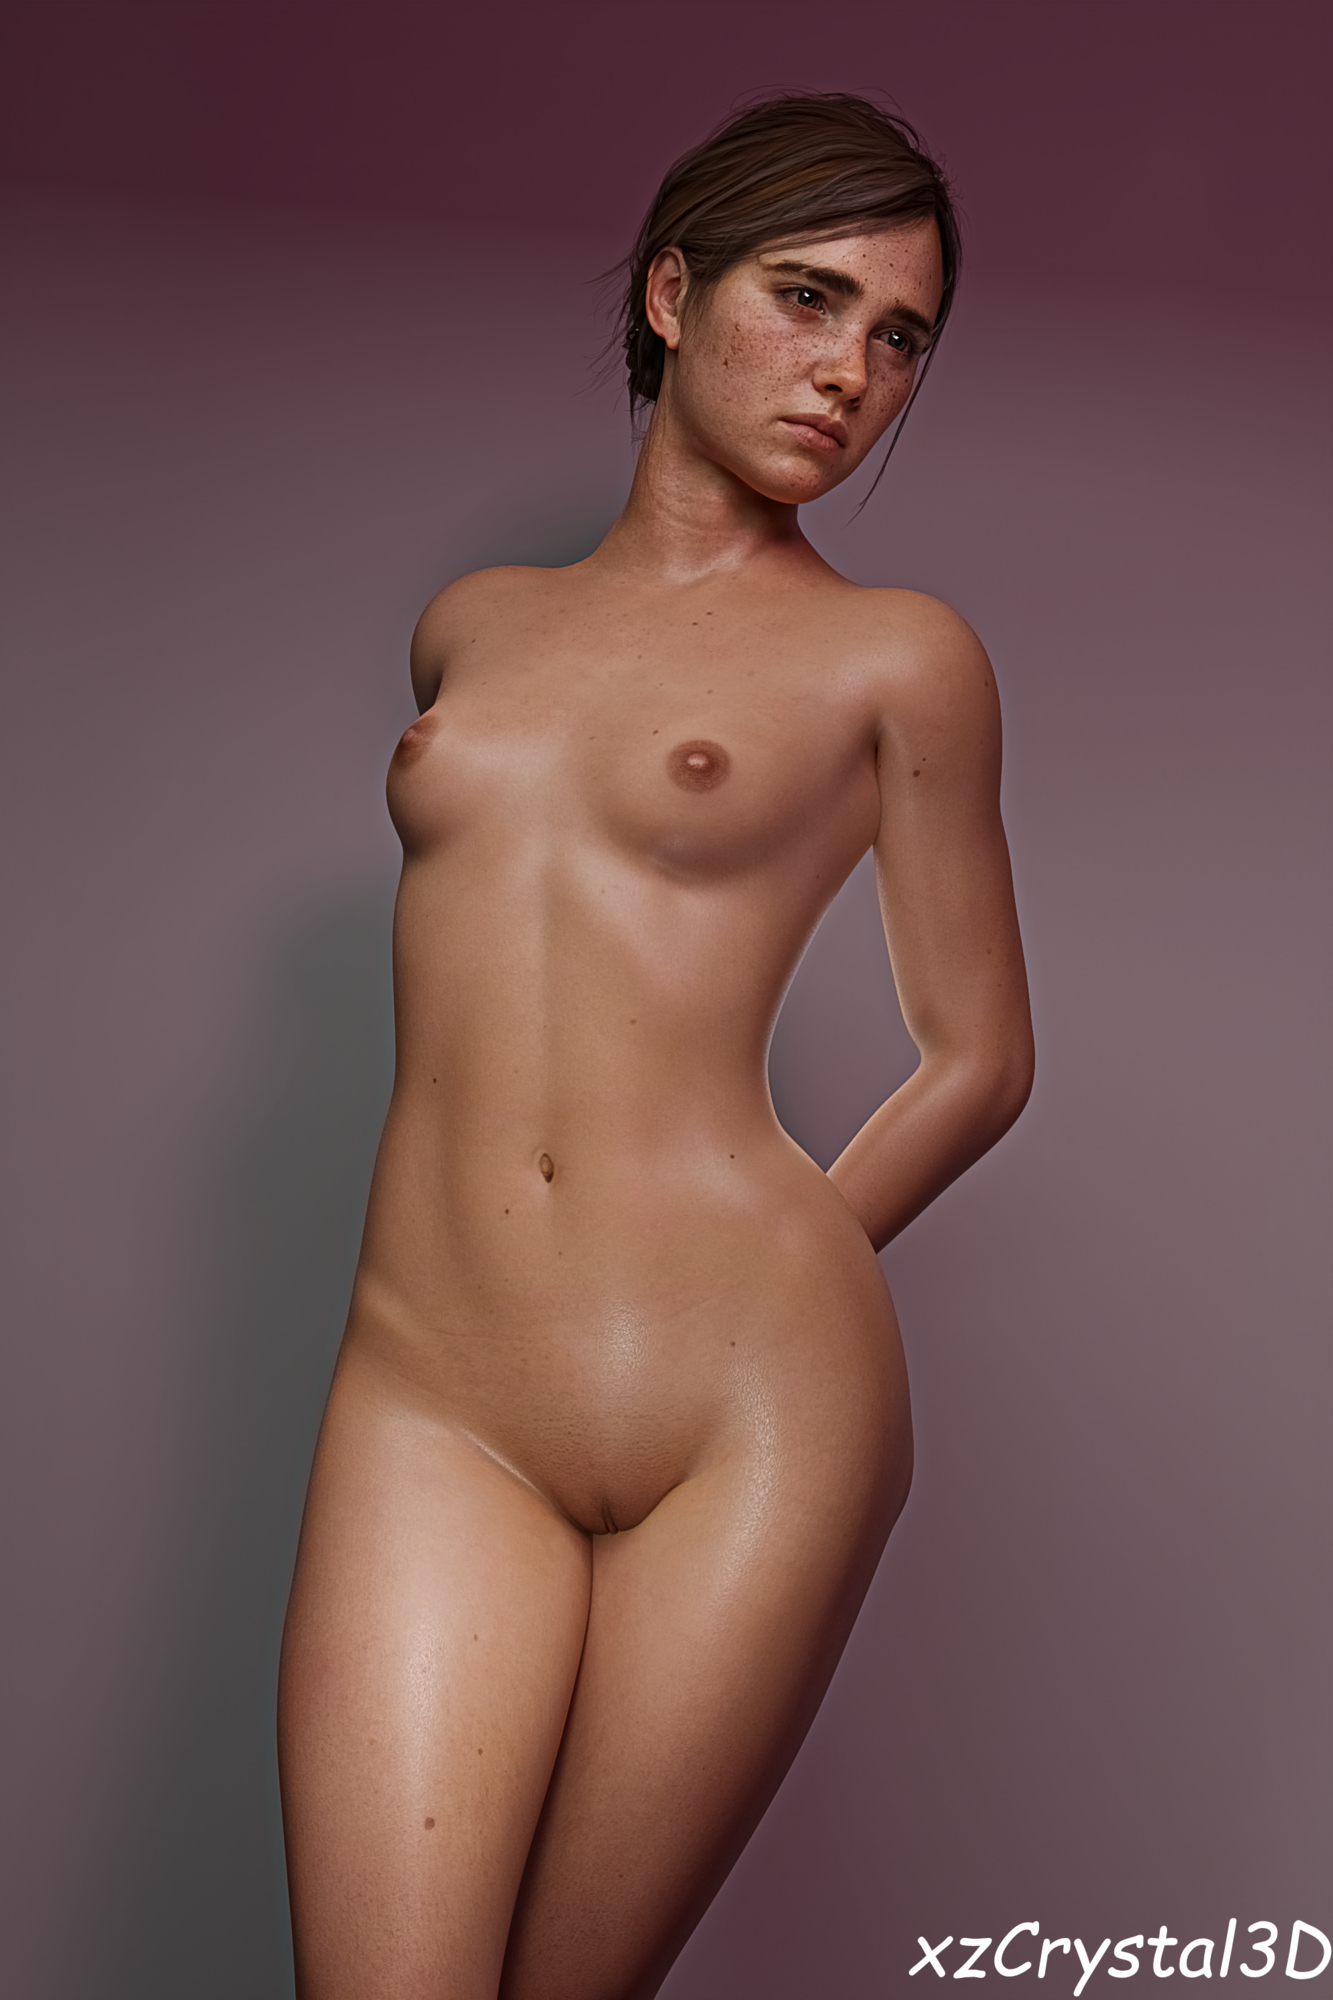 Nude us the of last Anyone know